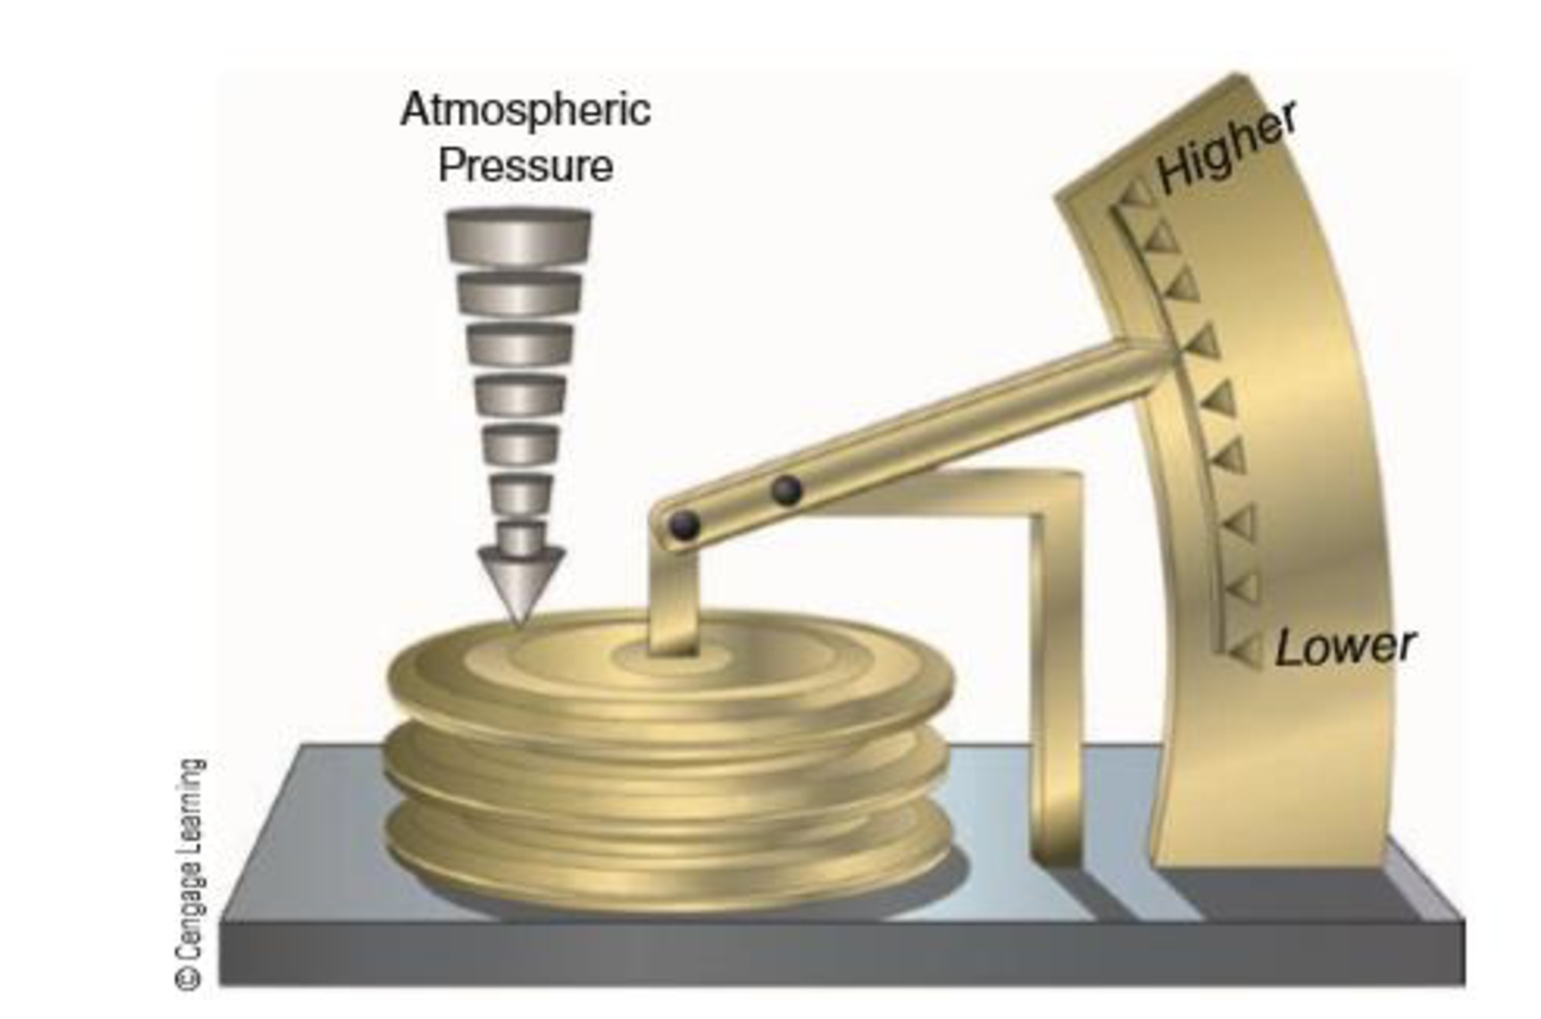 Chapter 4, Problem 2FQ, Why are aneroid barometers advantageous in comparison to a mercurial barometer for some